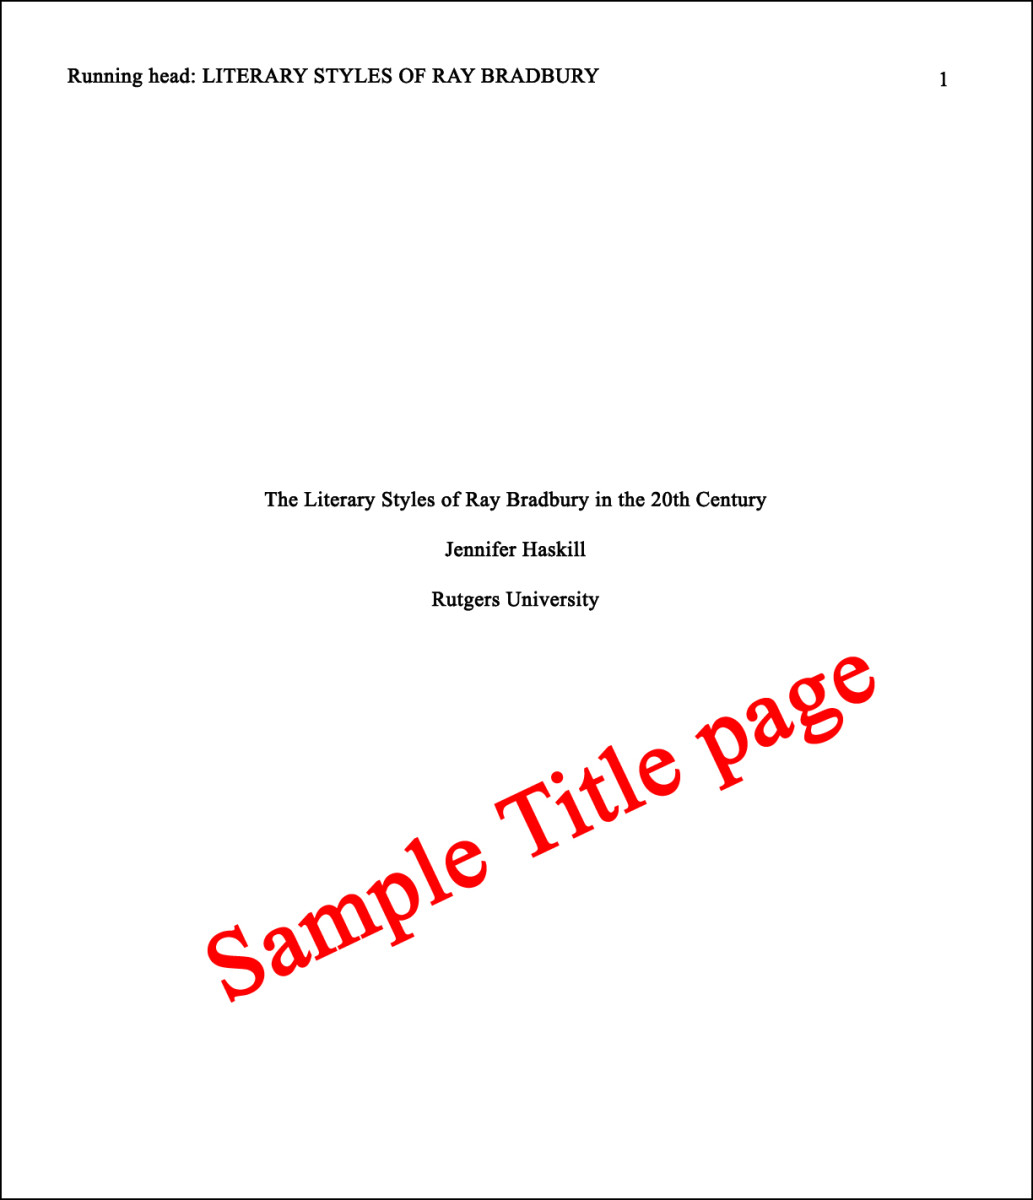 cover sheet for essays Essay cover sheet is a document template that is filled according to the field requirement it can composed as legal document as well as educational or syllabus sheet form.